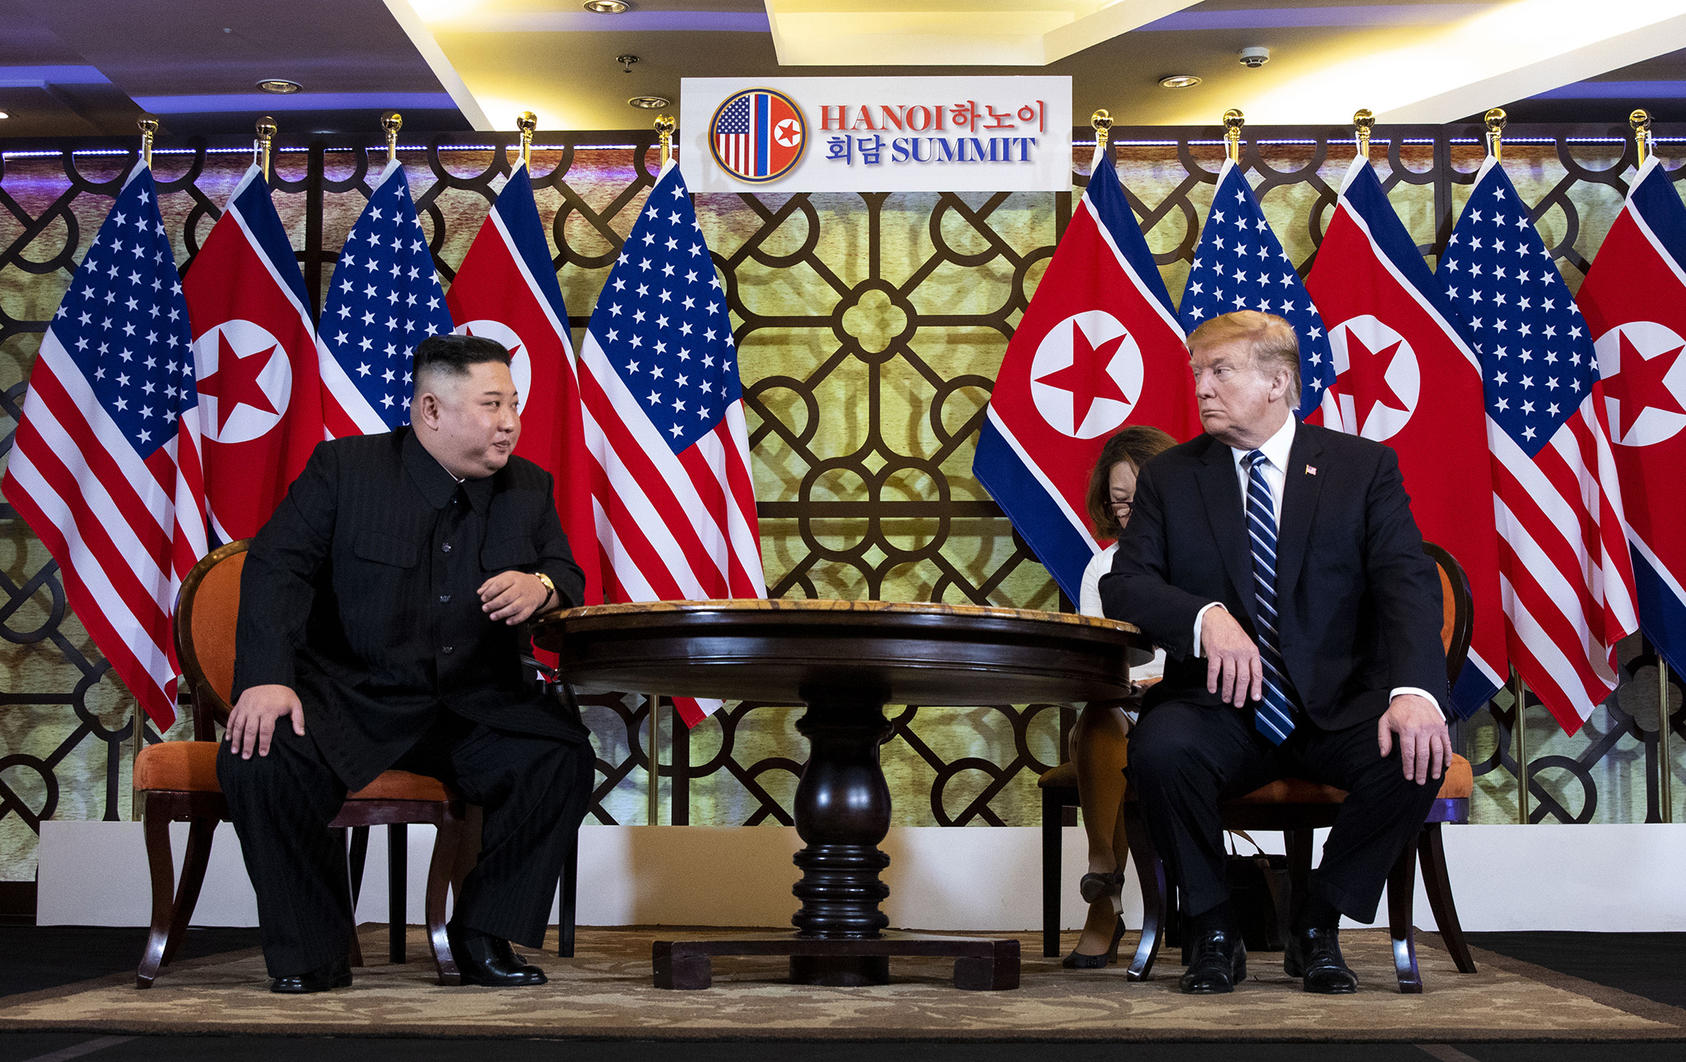 President Donald Trump and Kim Jong Un, the North Korean leader, meet at the Metropole Hotel in Hanoi, Vietnam, Feb. 28, 2019. (Doug Mills/The New York Times)